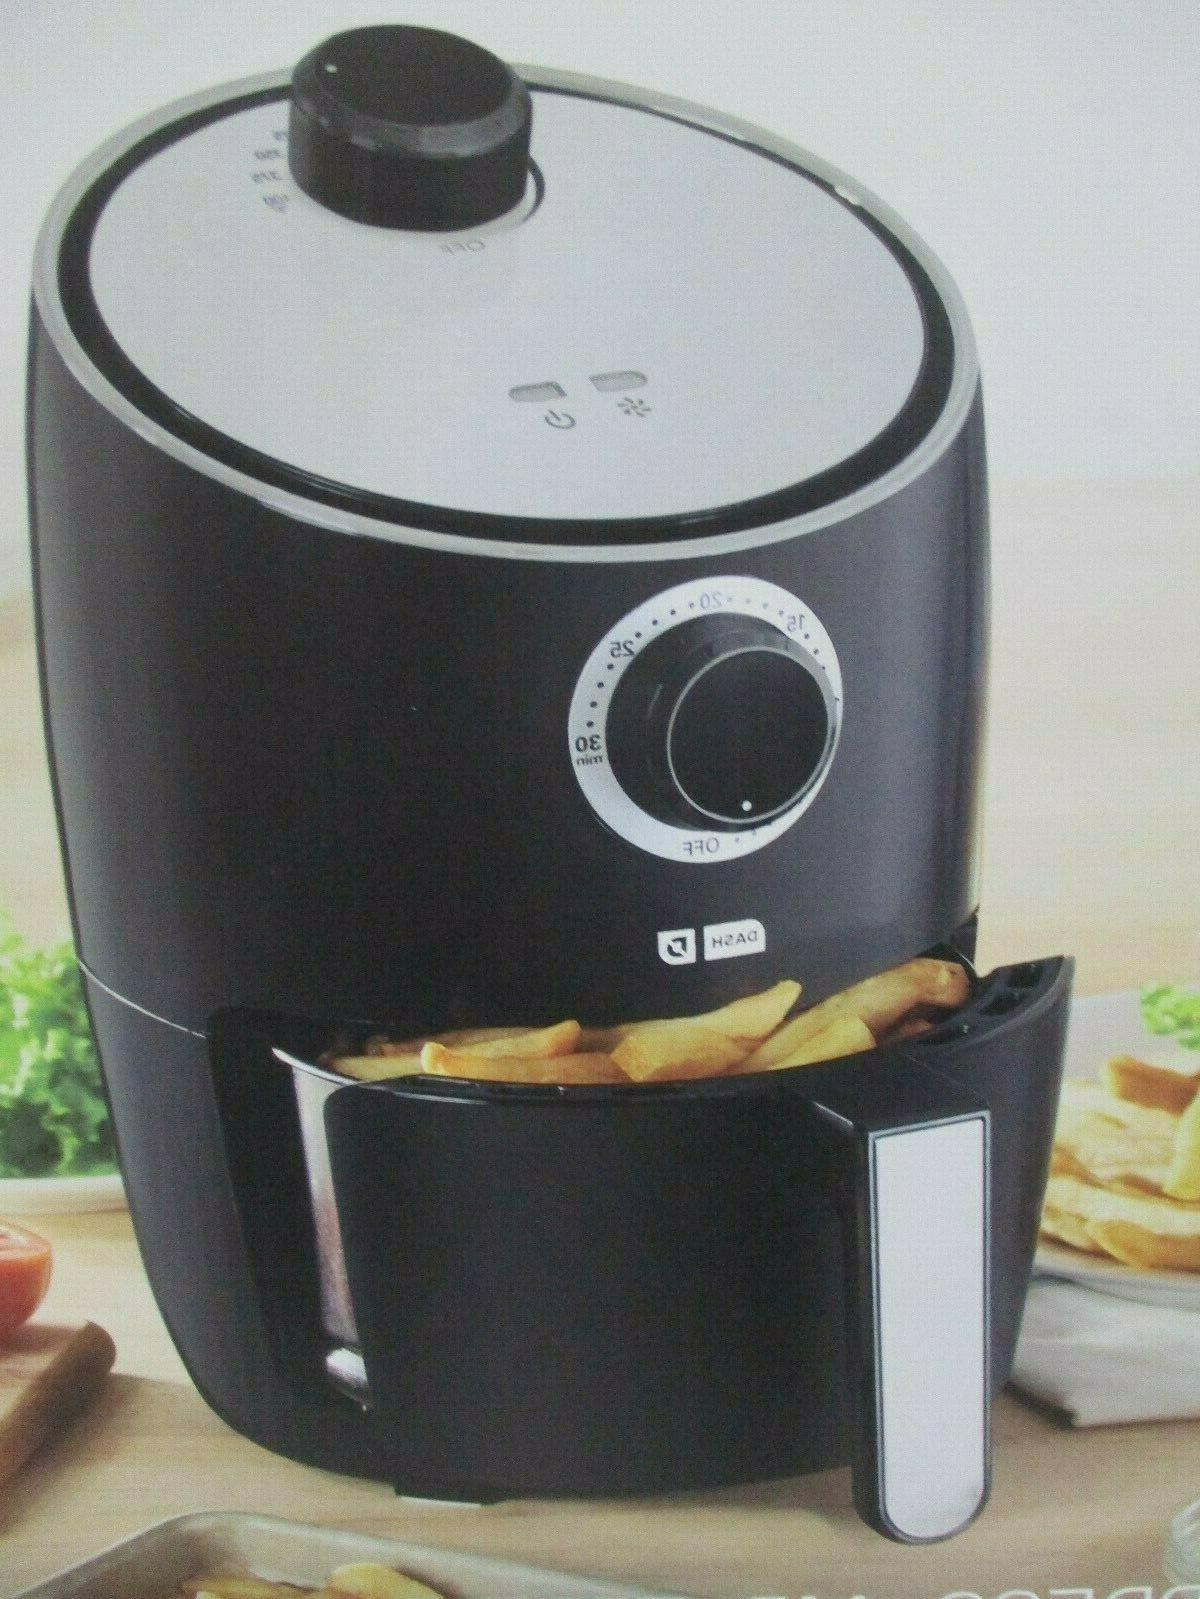 Dash Express Air Fryer 2 Quart 1200 Watts Black New In Box